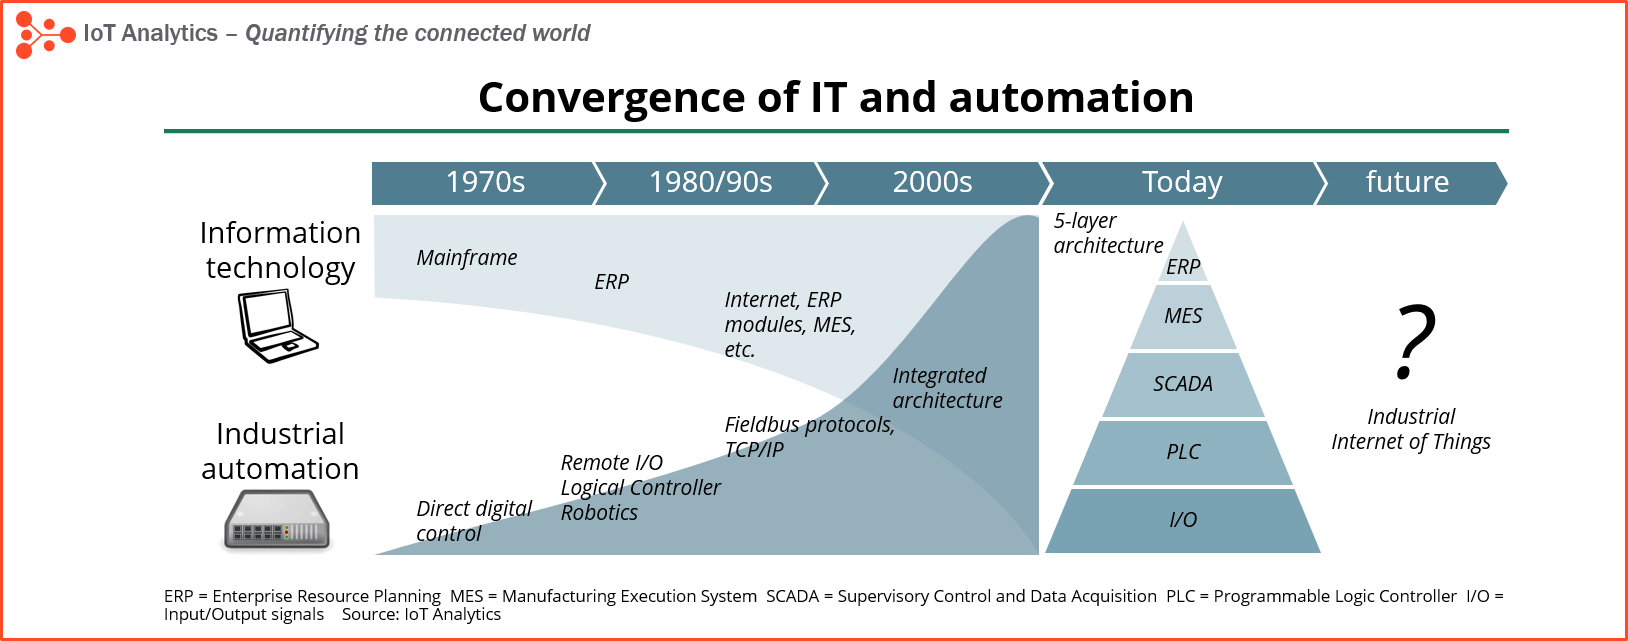 Convergence IT industrial automation